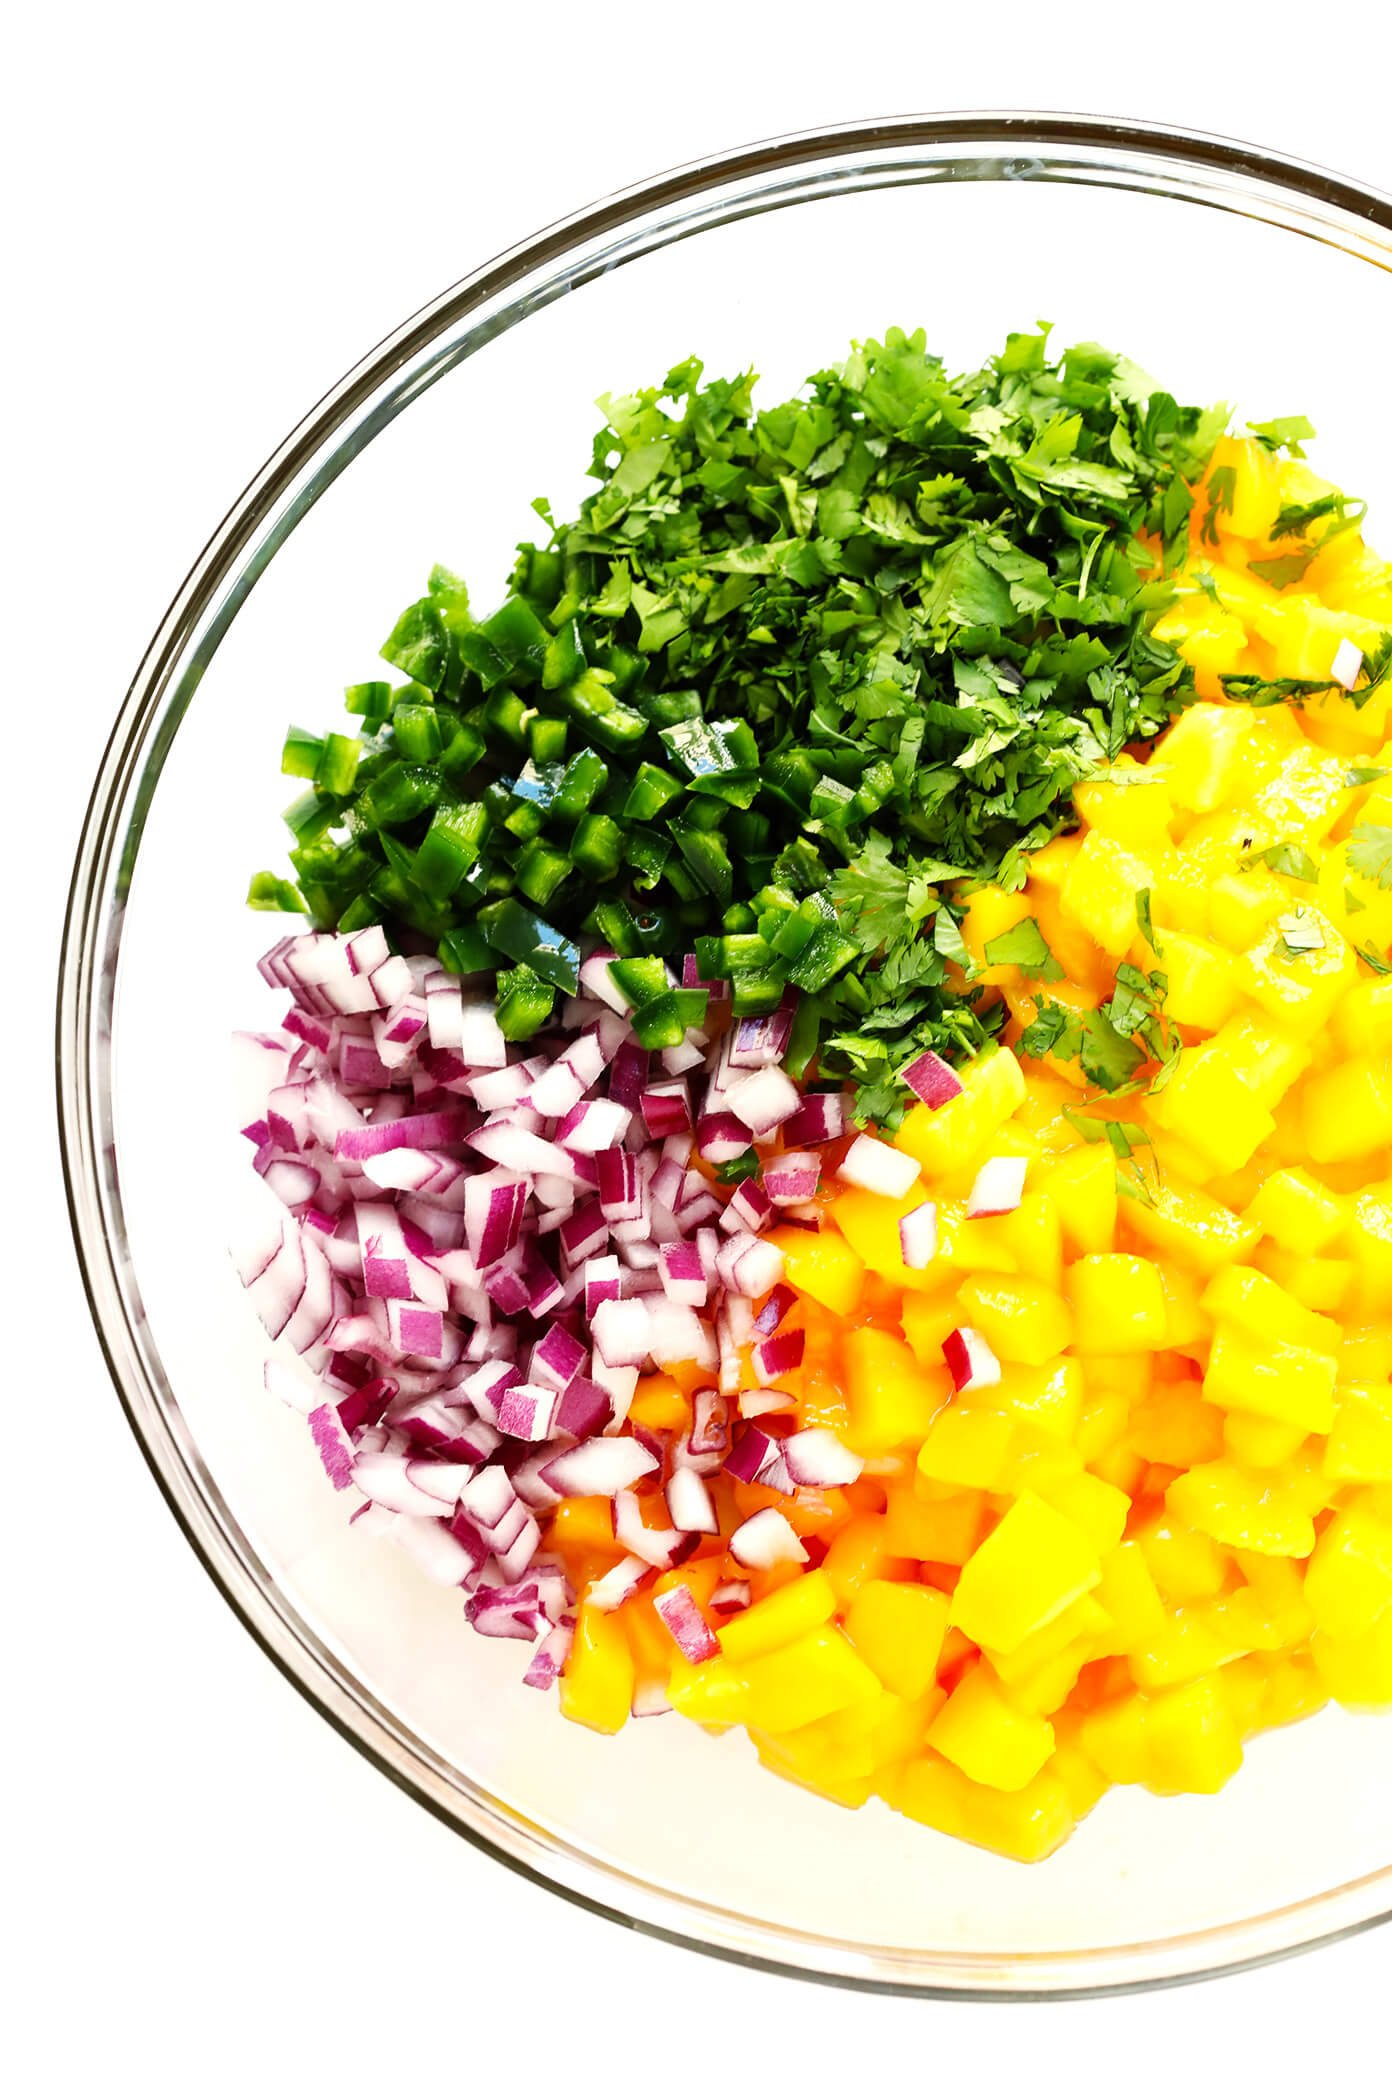 5-Ingredient Mango Salsa Recipe Ingredients